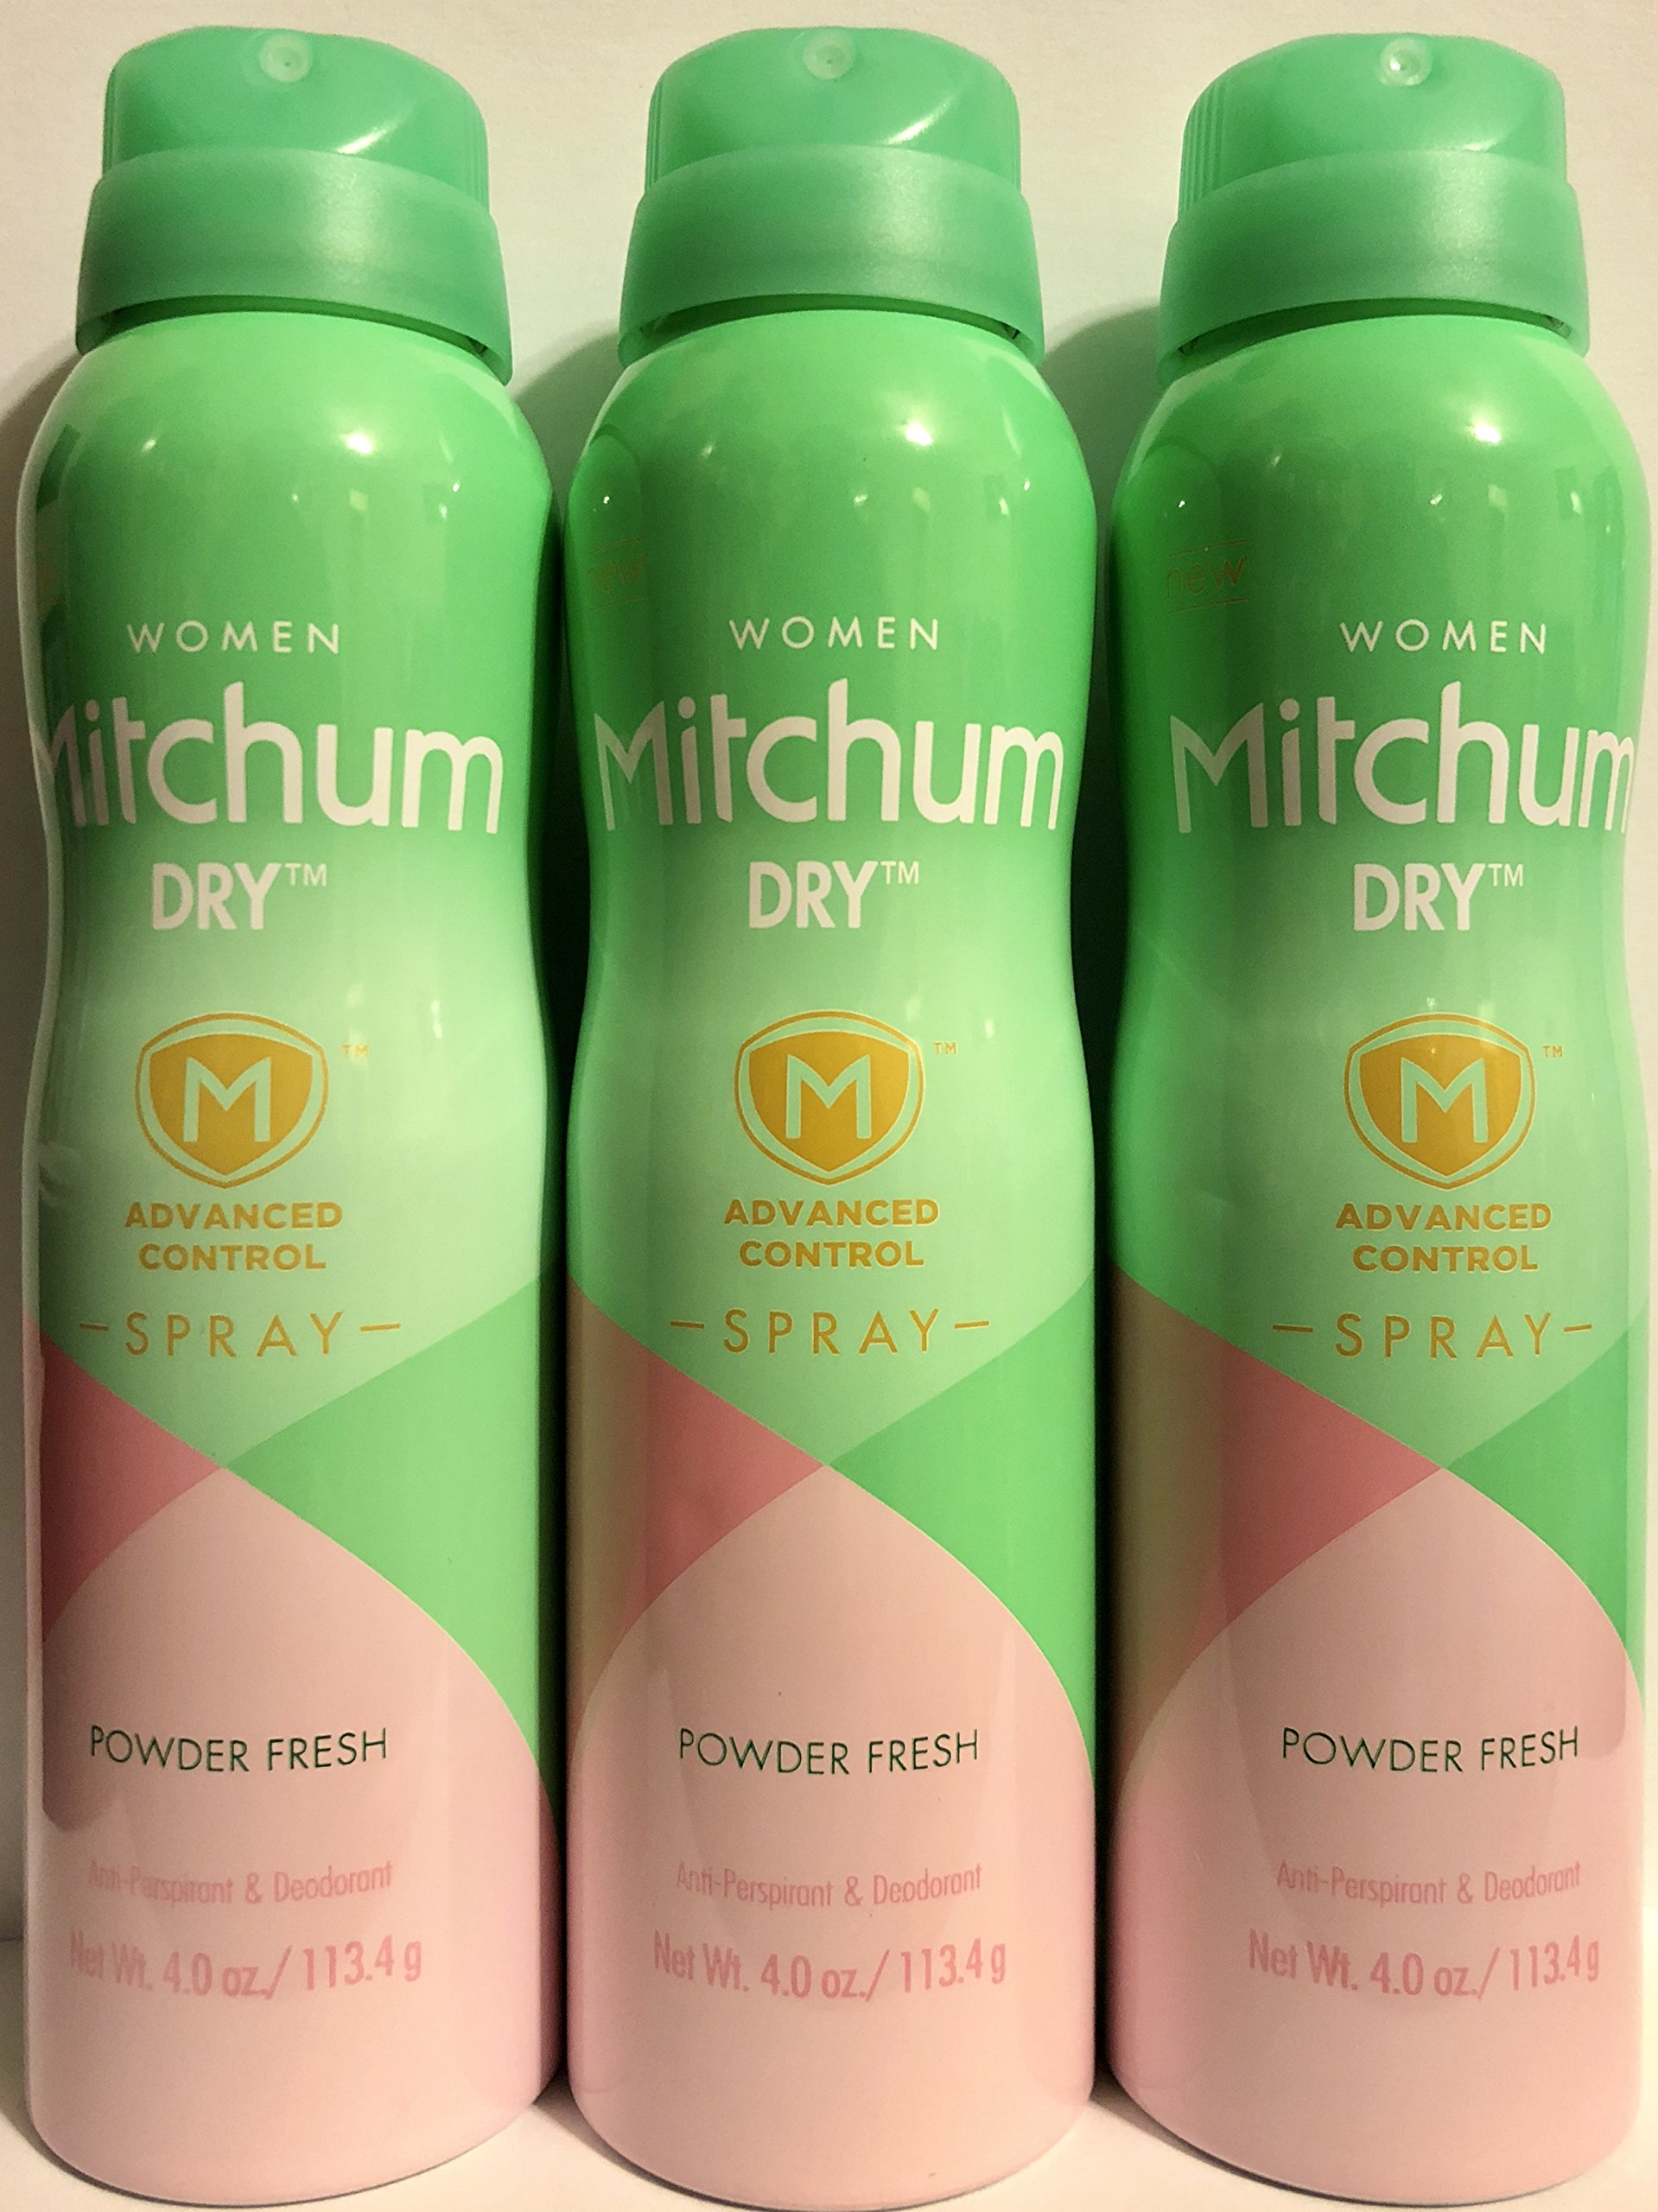 Mitchum Anti-Perspirant & Deodorant Dry Spray For Women - Powder Fresh - Net Wt. 4.0 OZ (113.4 g) Per Can - Pack of 3 Cans